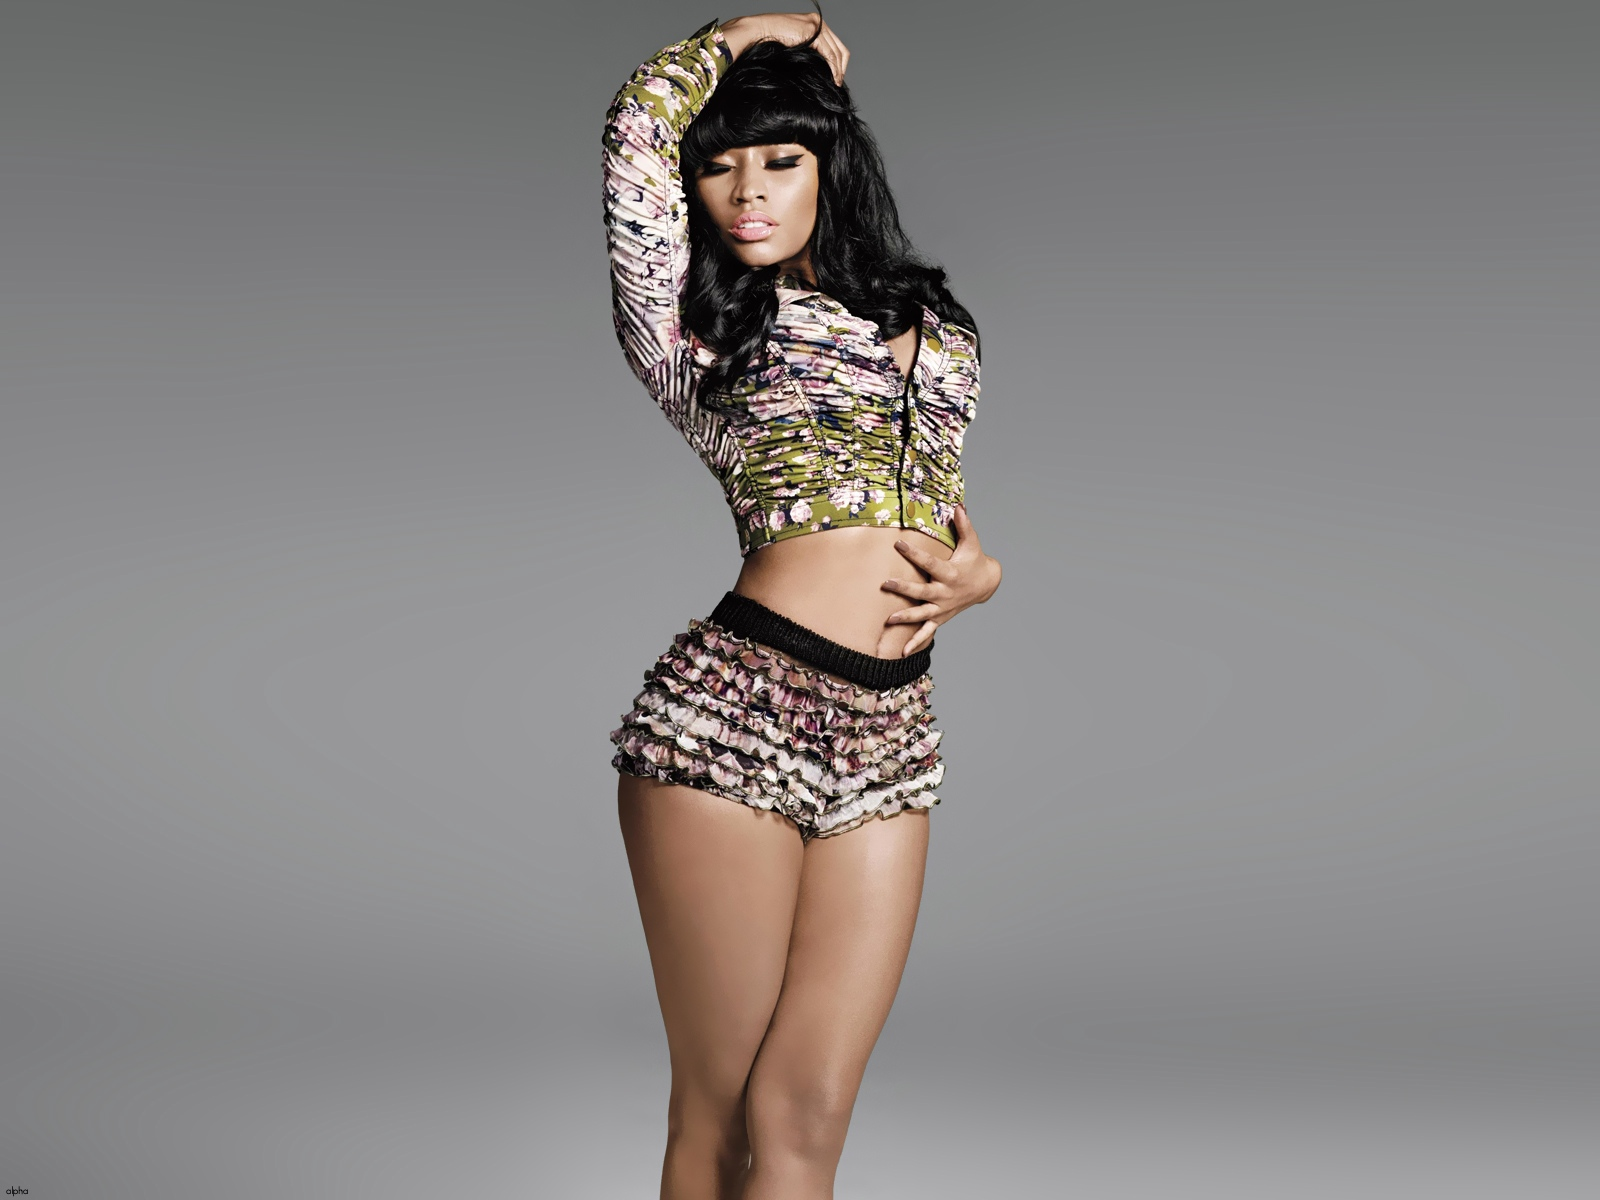 sexy nicki minaj   wallpaper high definition high